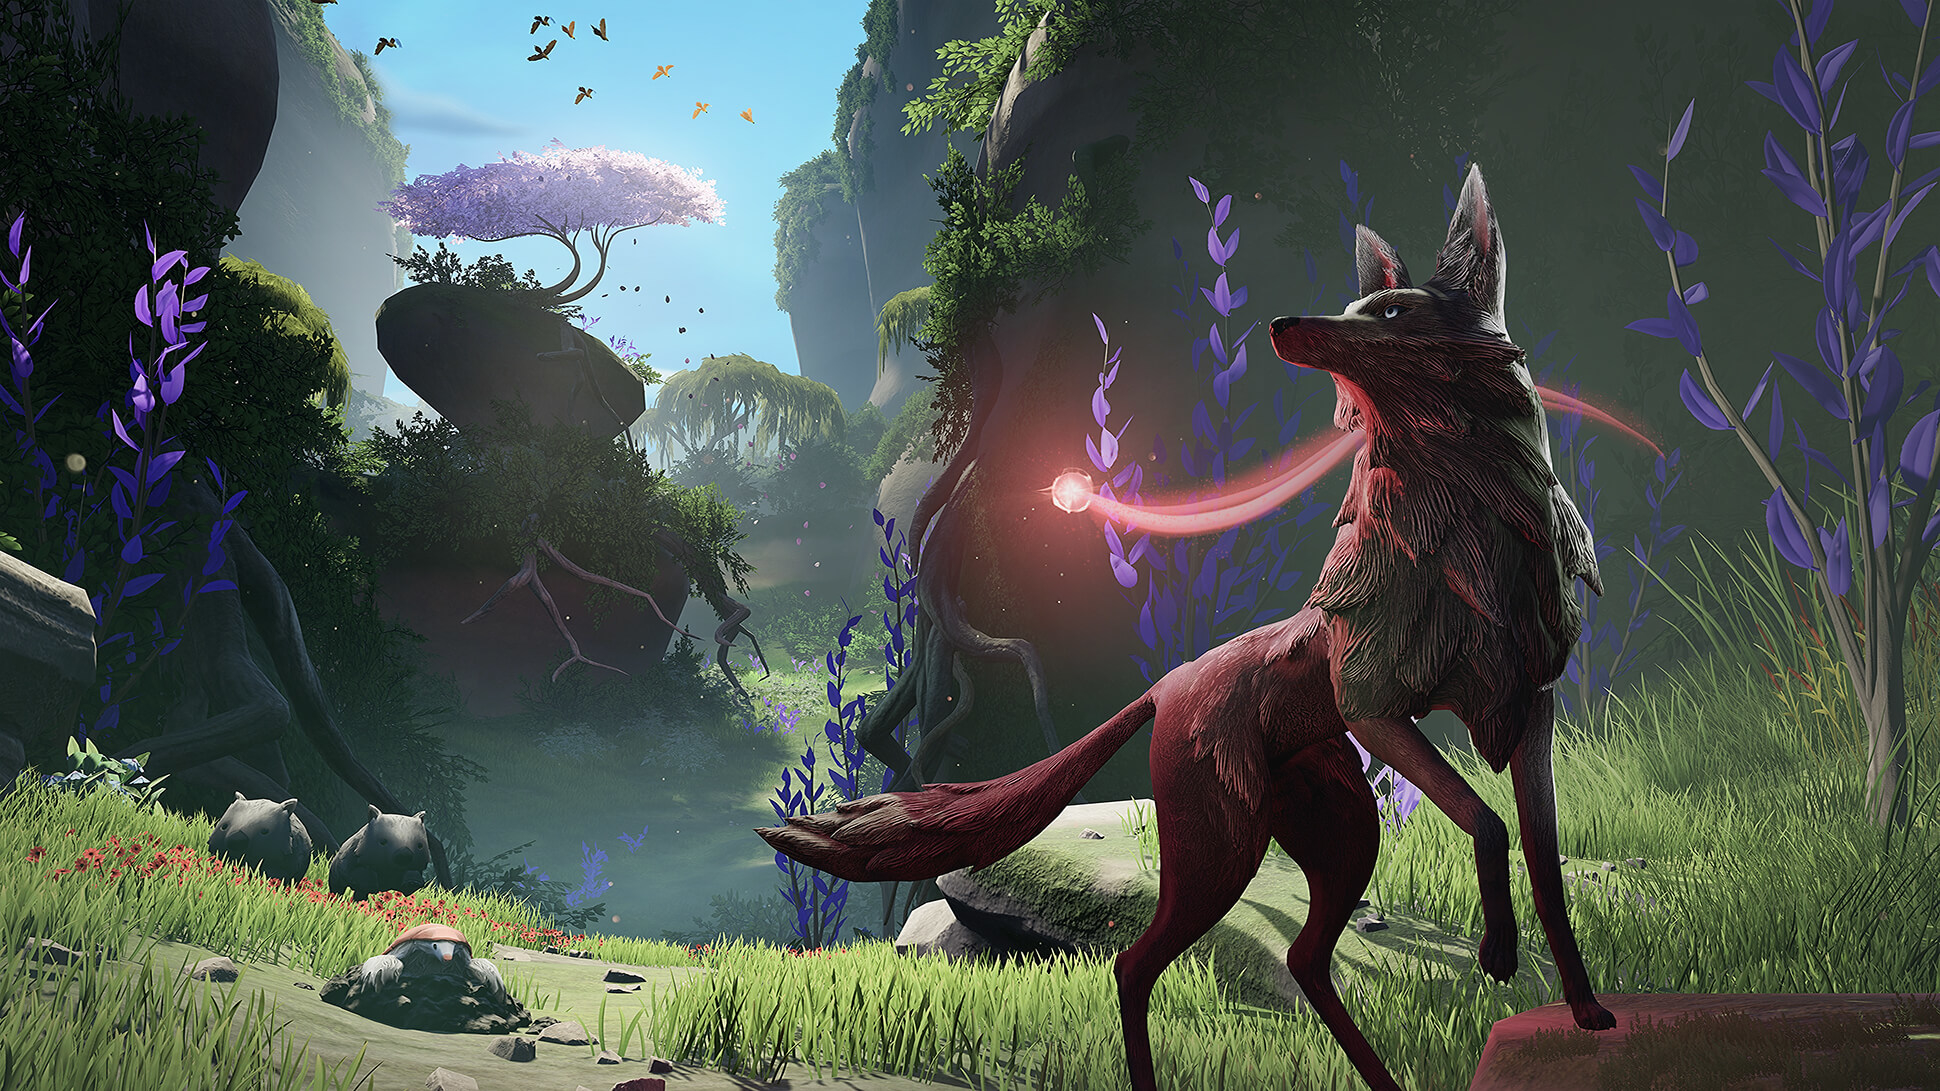 1920x1200 Lost Ember Wolf 1200p Wallpaper Hd Games 4k Wallpapers Images Photos And Background